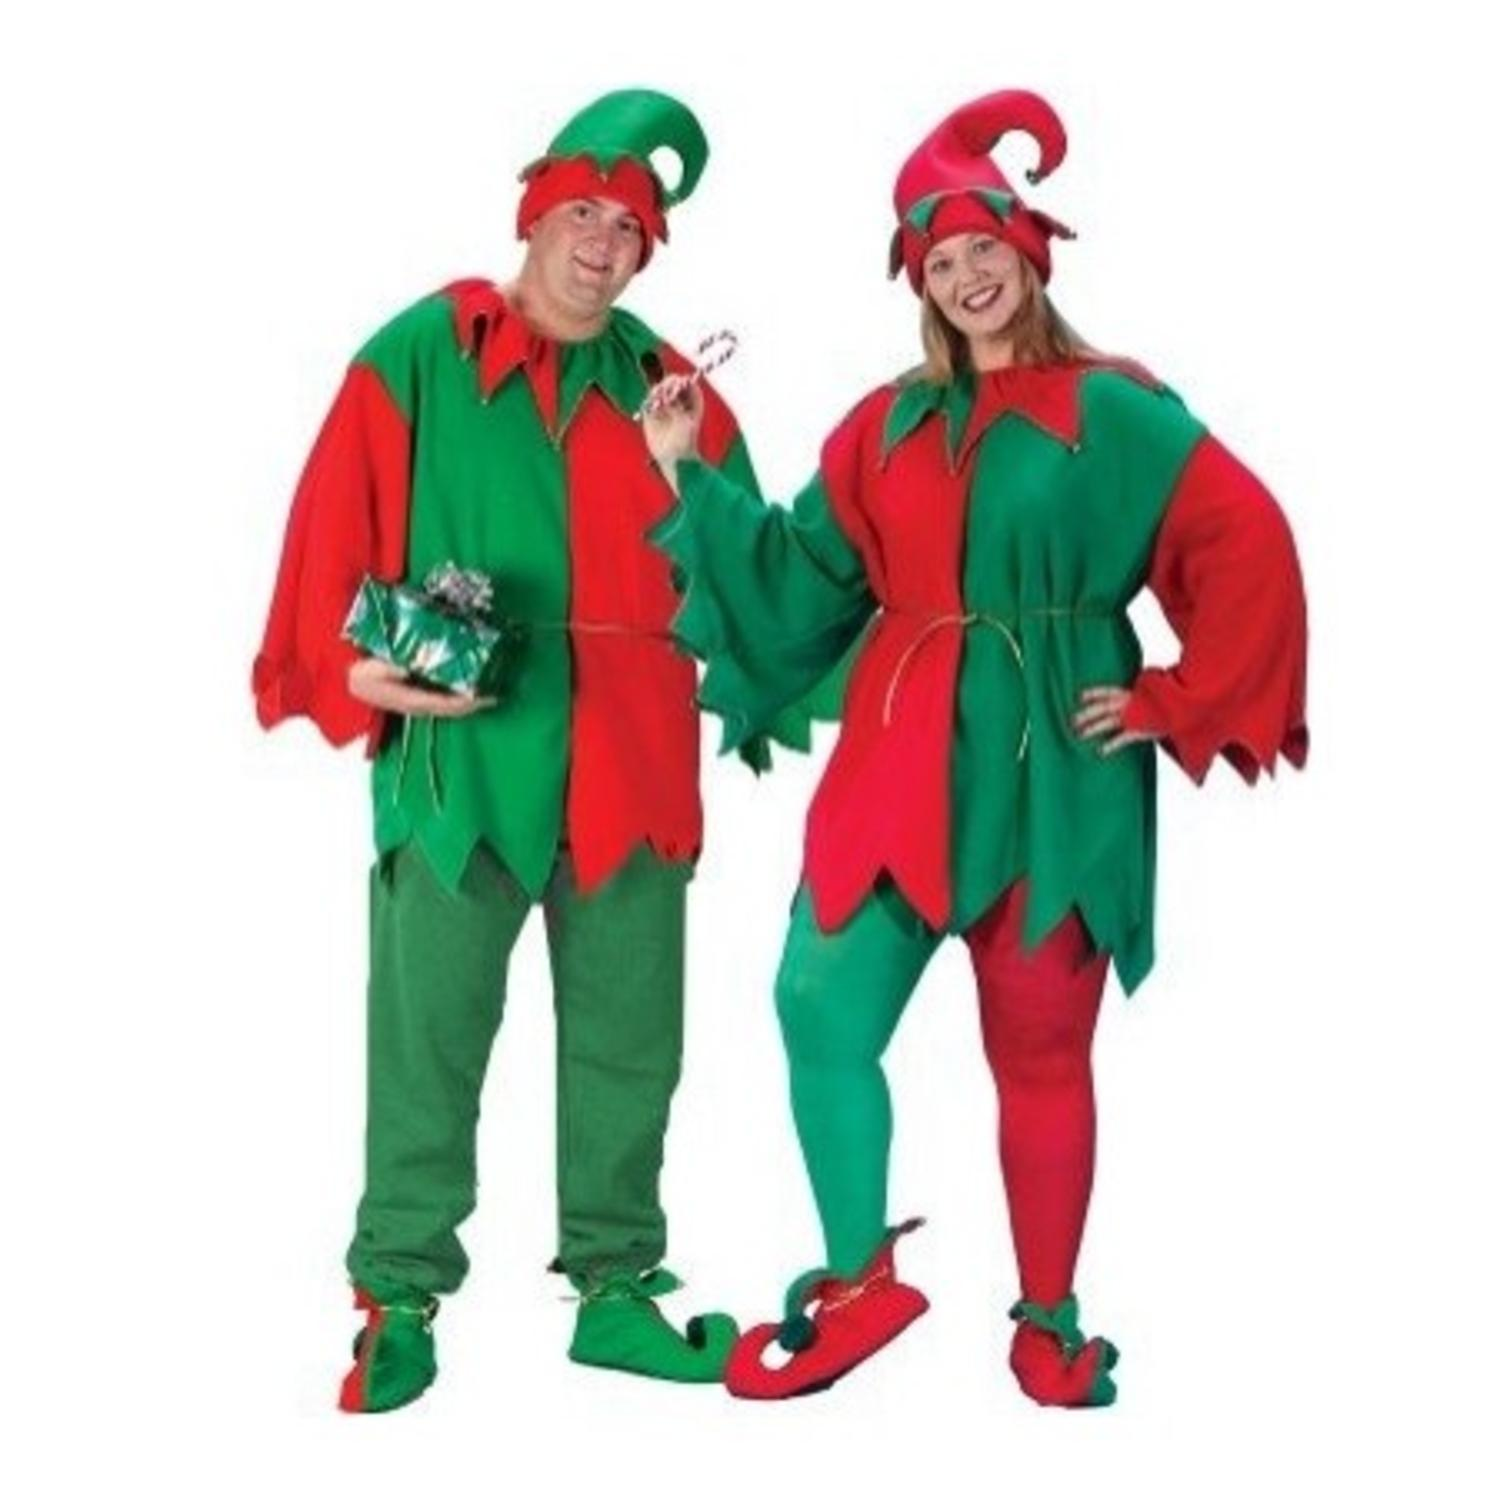 Unisex Adult 5-Piece Christmas Elegant Elf Costume Set - Adult Men's/Women's Plus Size